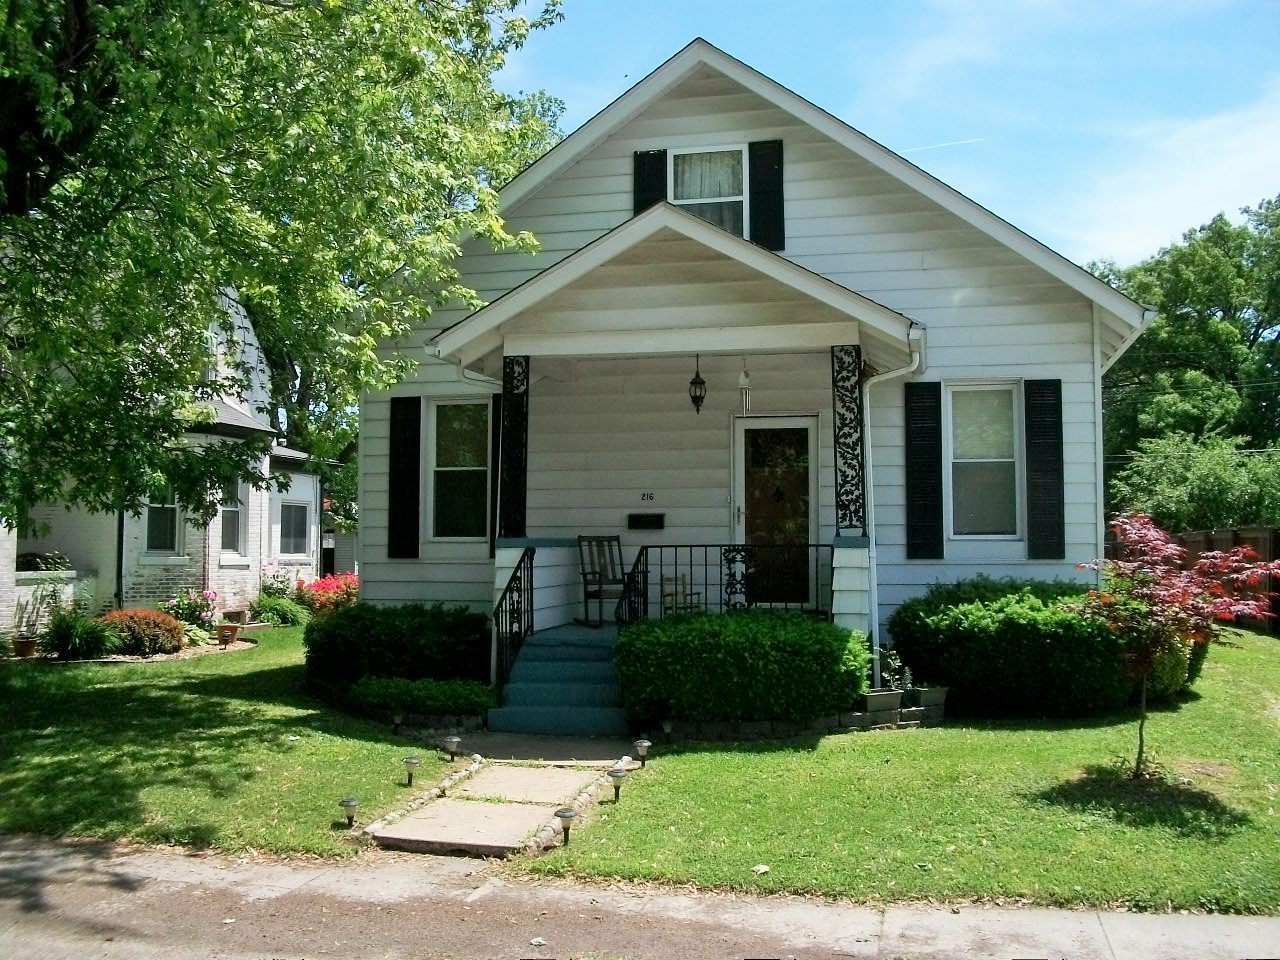 216 S. 4th, Dupo, Illinois 62239